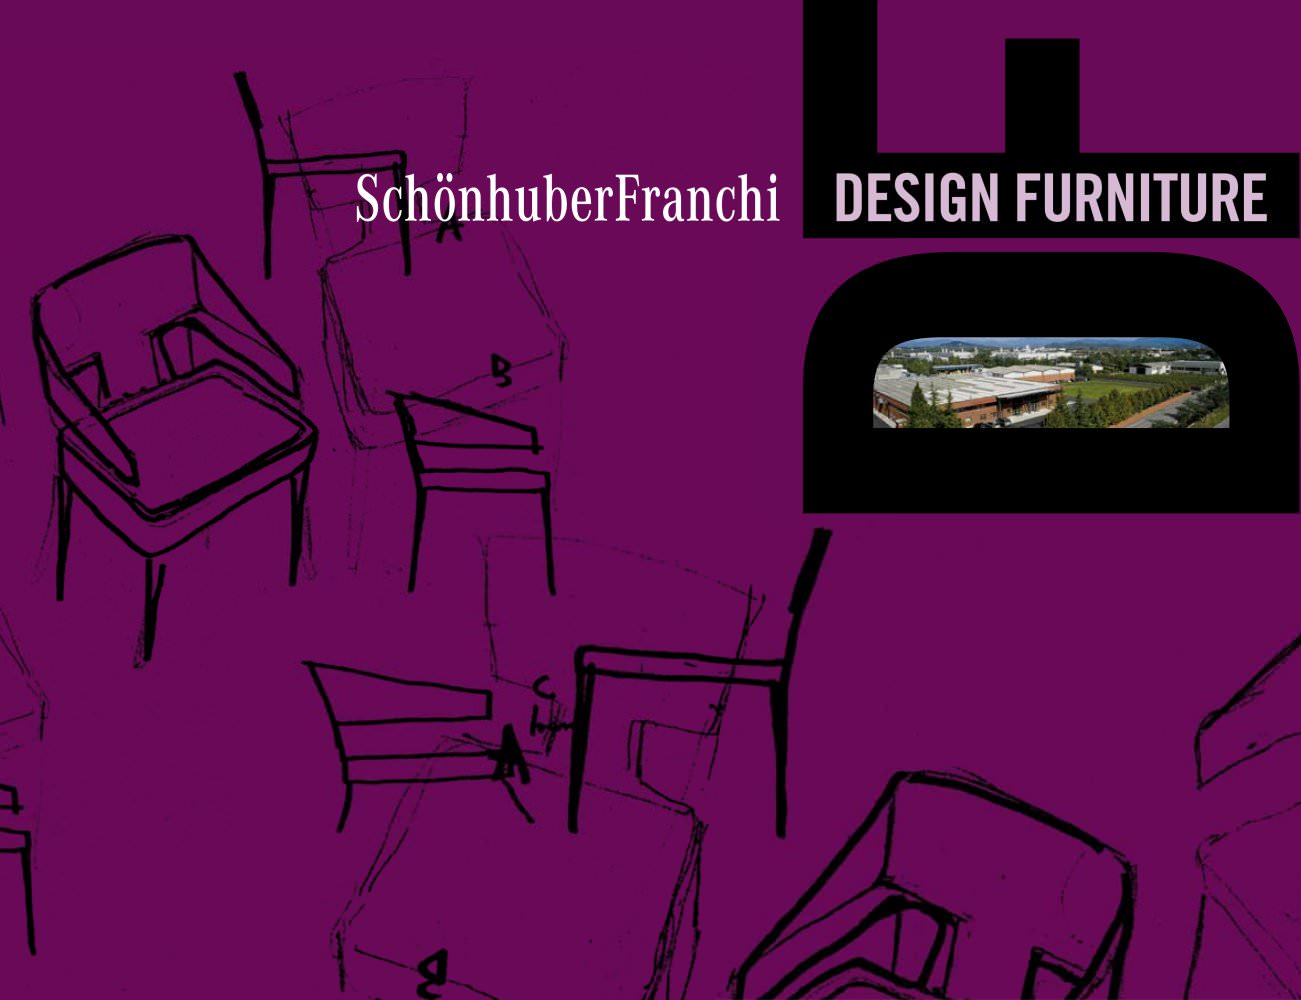 design furniture - schoenhuber franchi - pdf catalogues